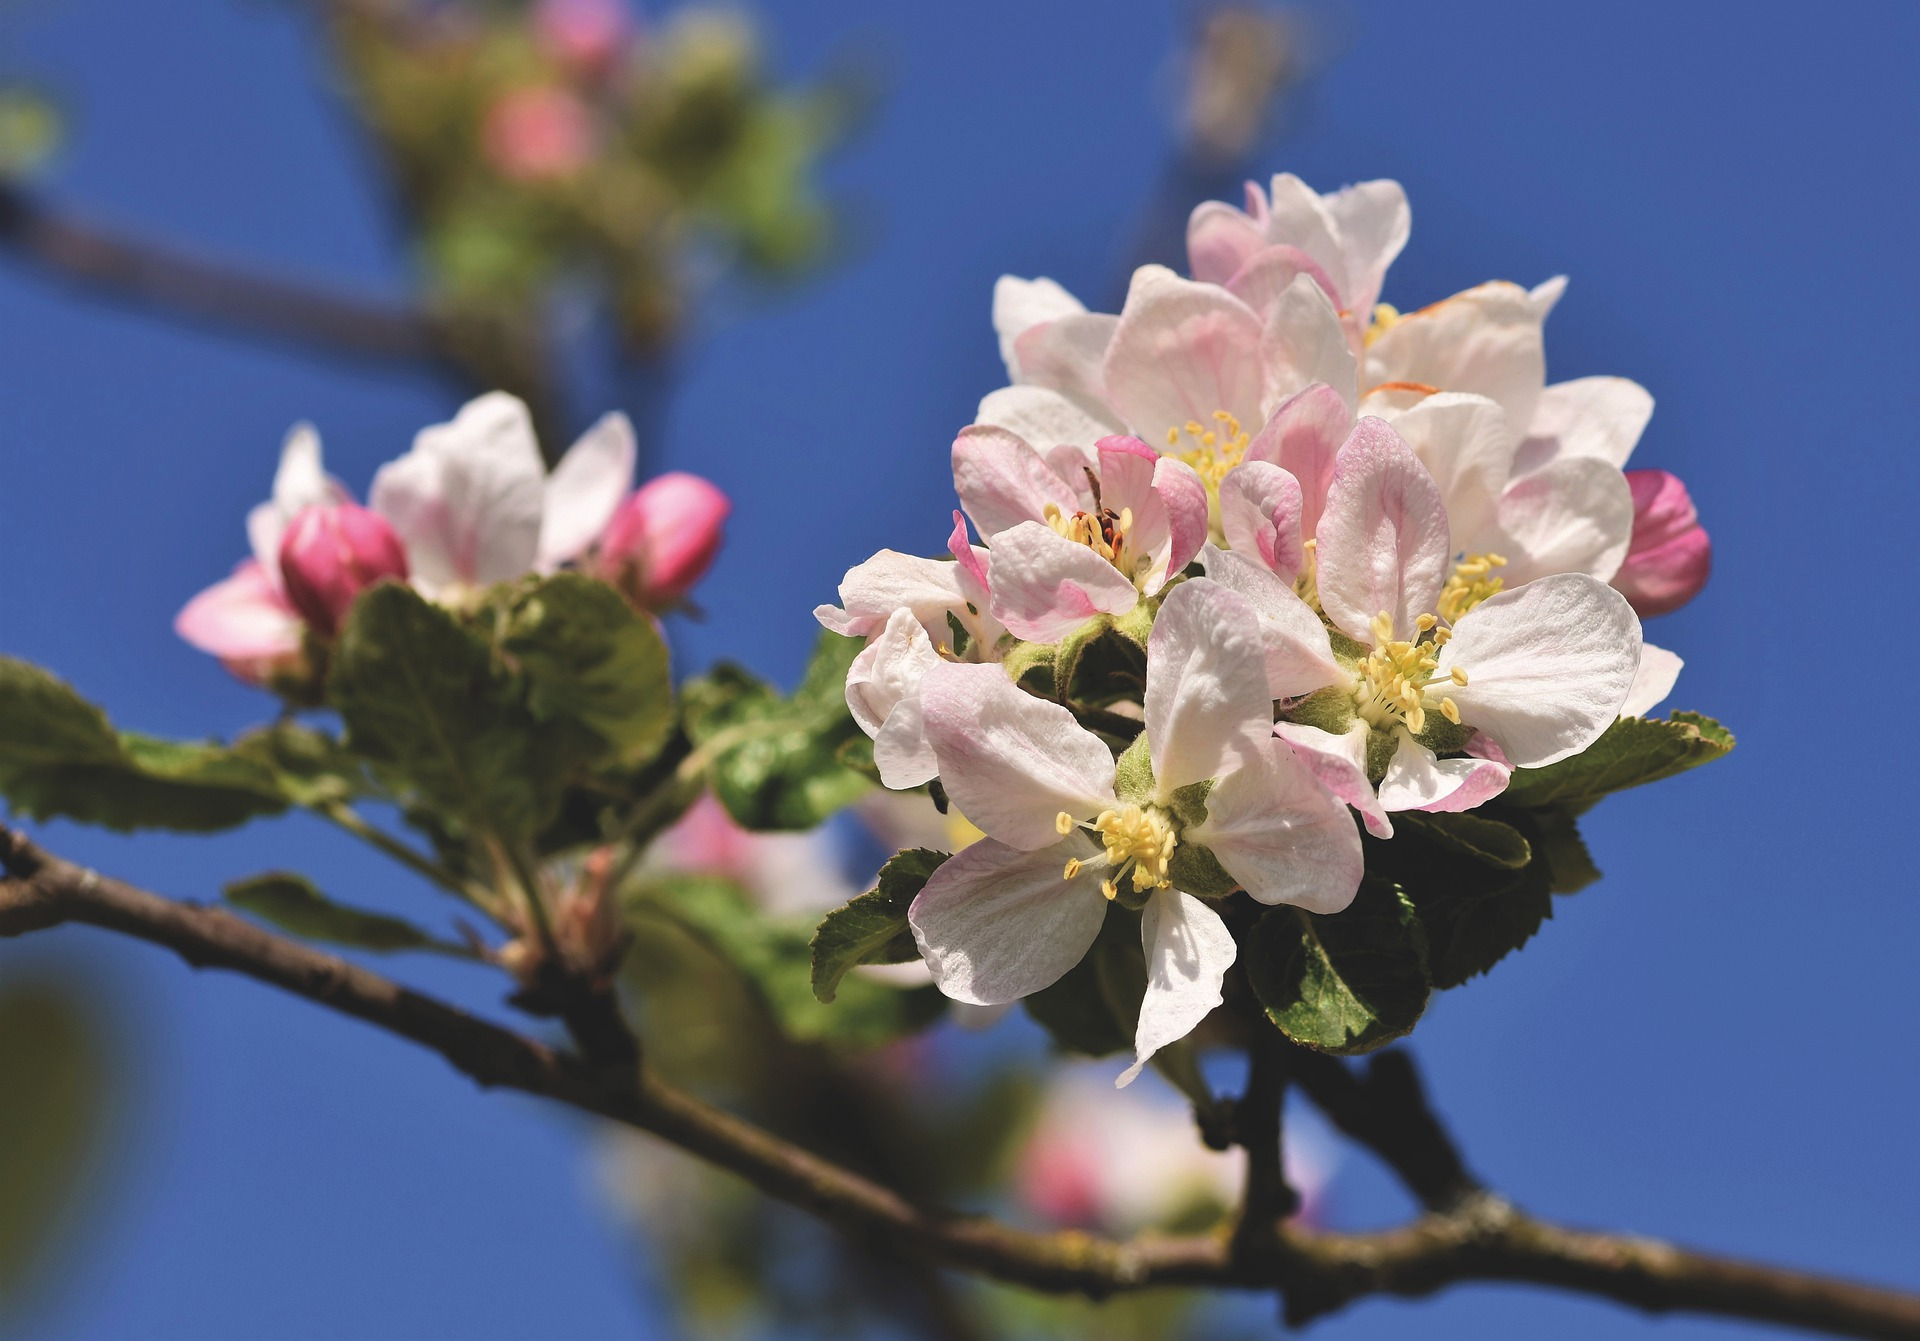 apple-blossom-5054129_1920.jpg